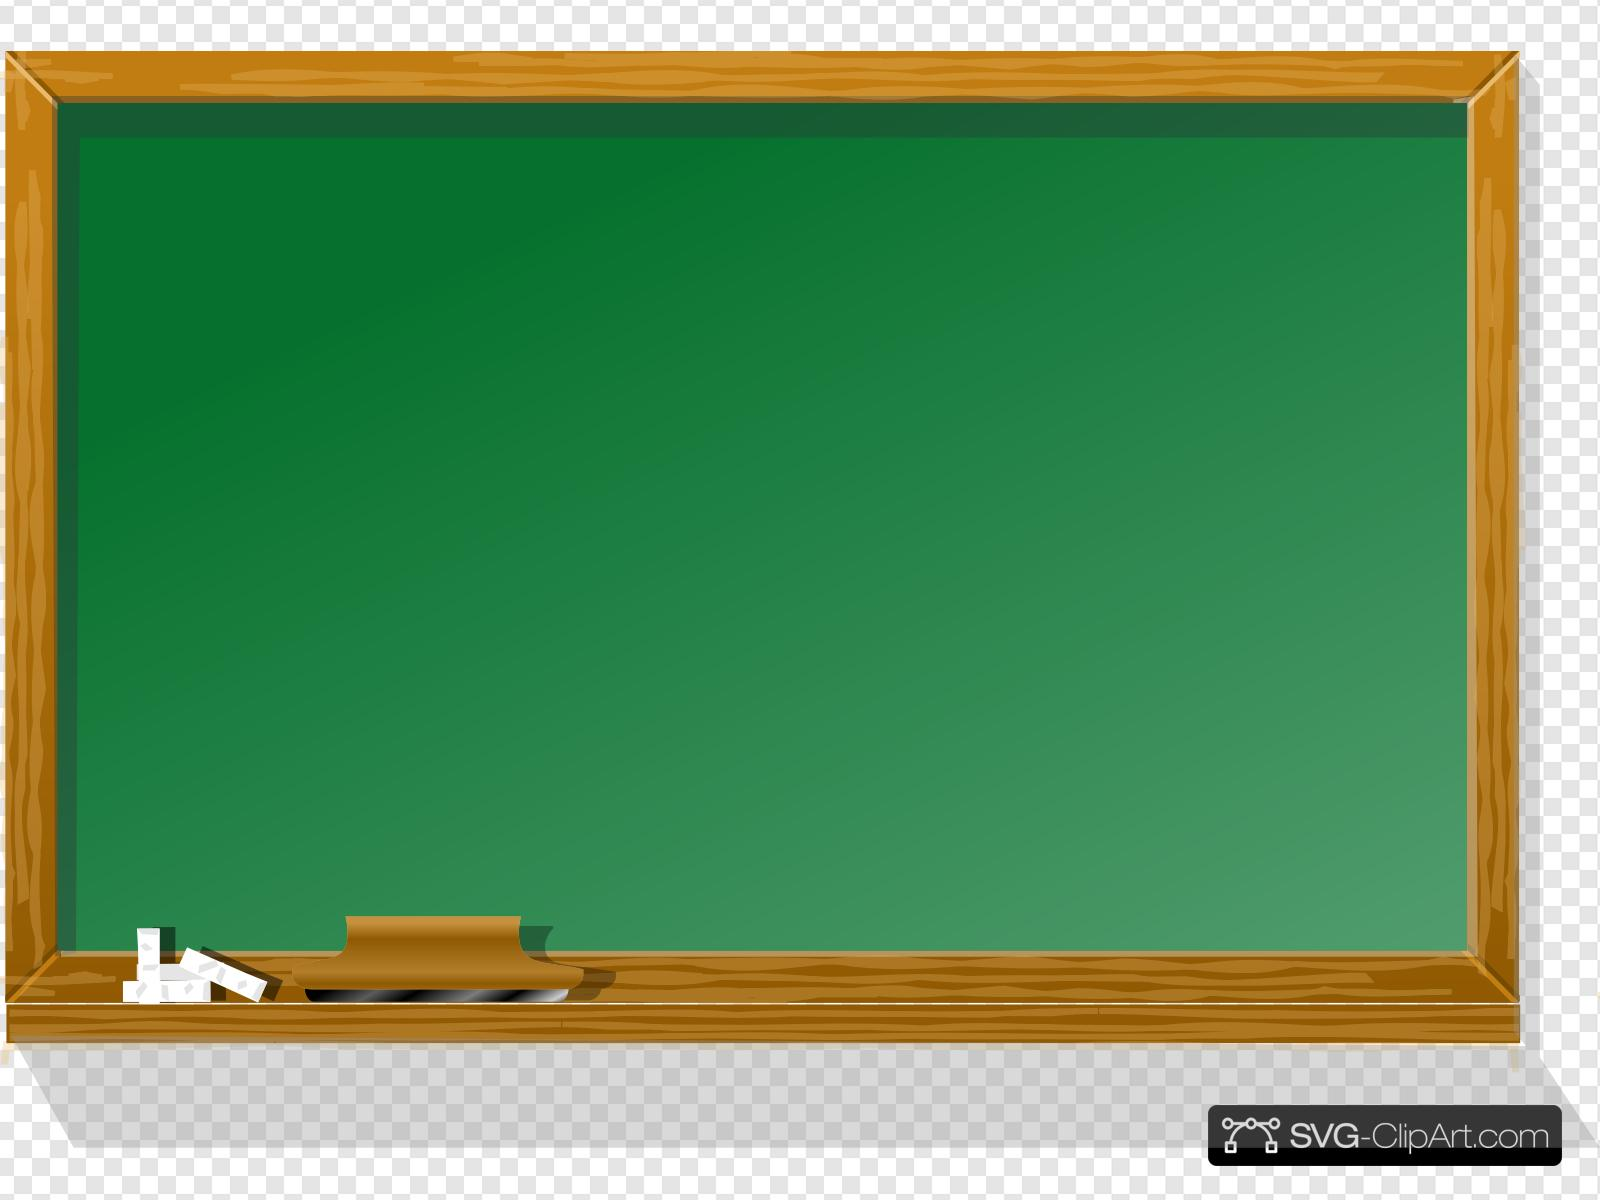 picture transparent library Blackboard clipart svg. Clip art icon and